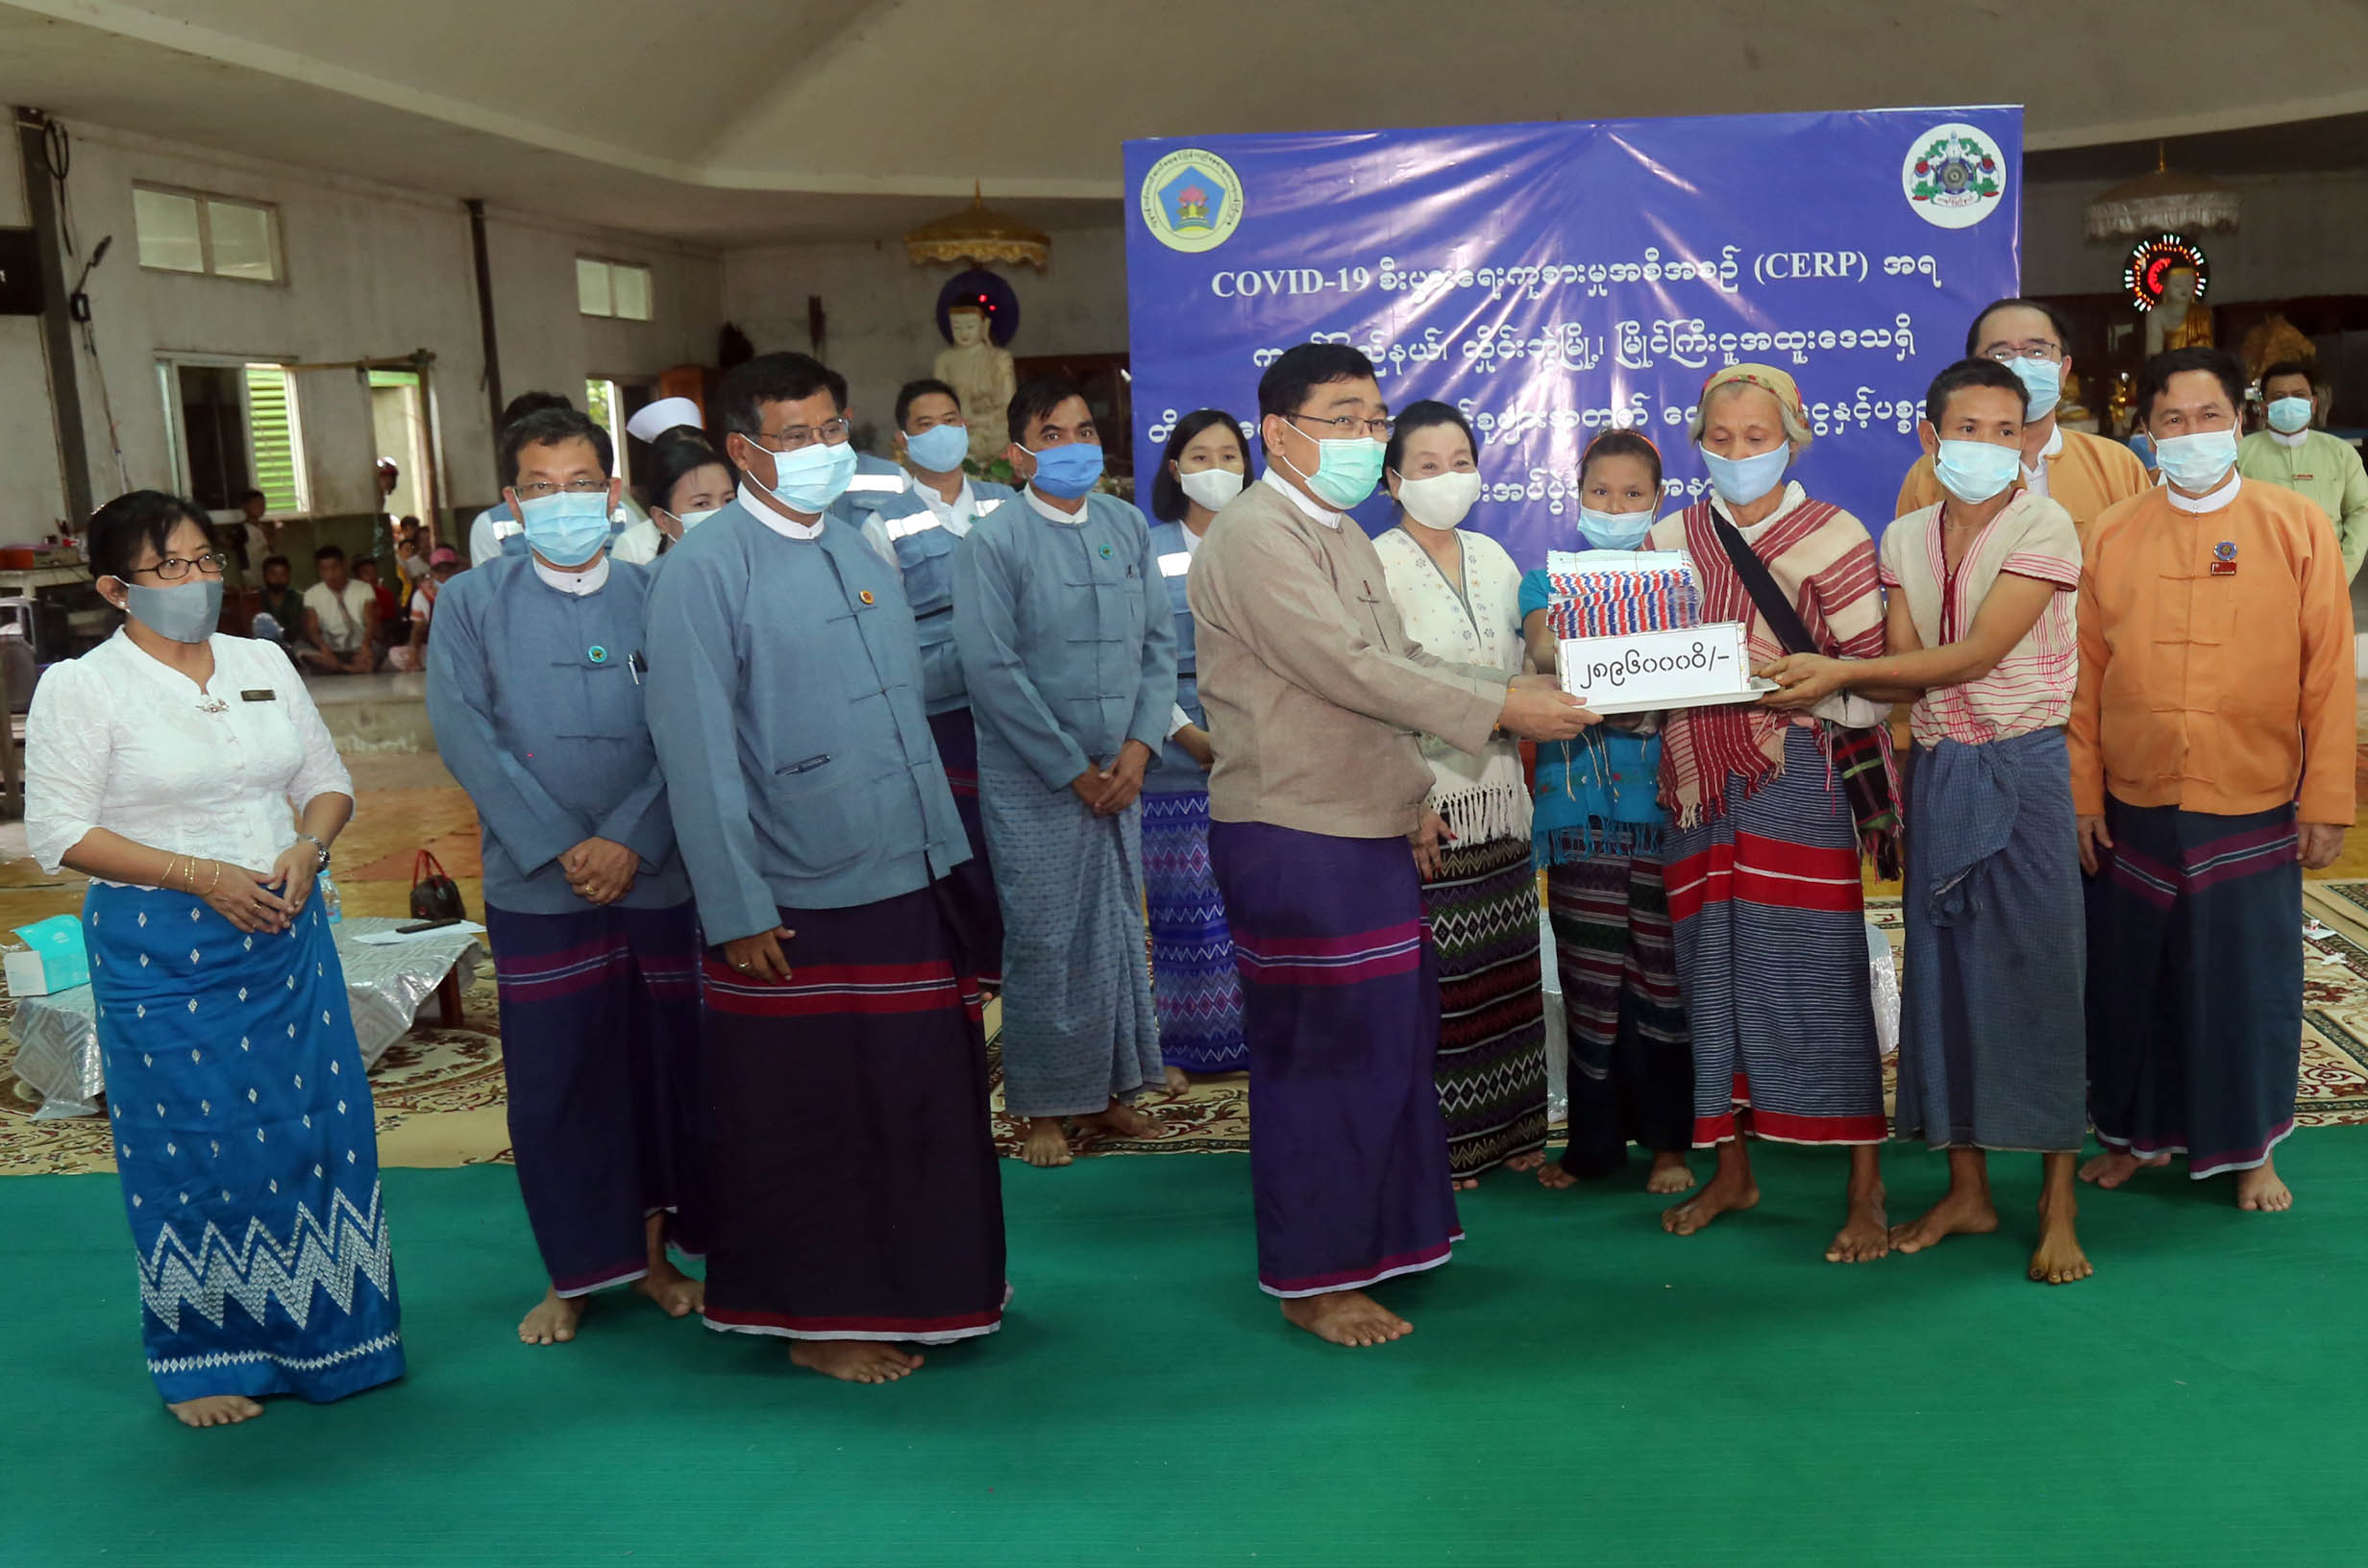 Union Minister Dr Win Myat Aye provides cash assistance from CERP for IDPs in Kayin State on 15 August 2020. Photo: MNA